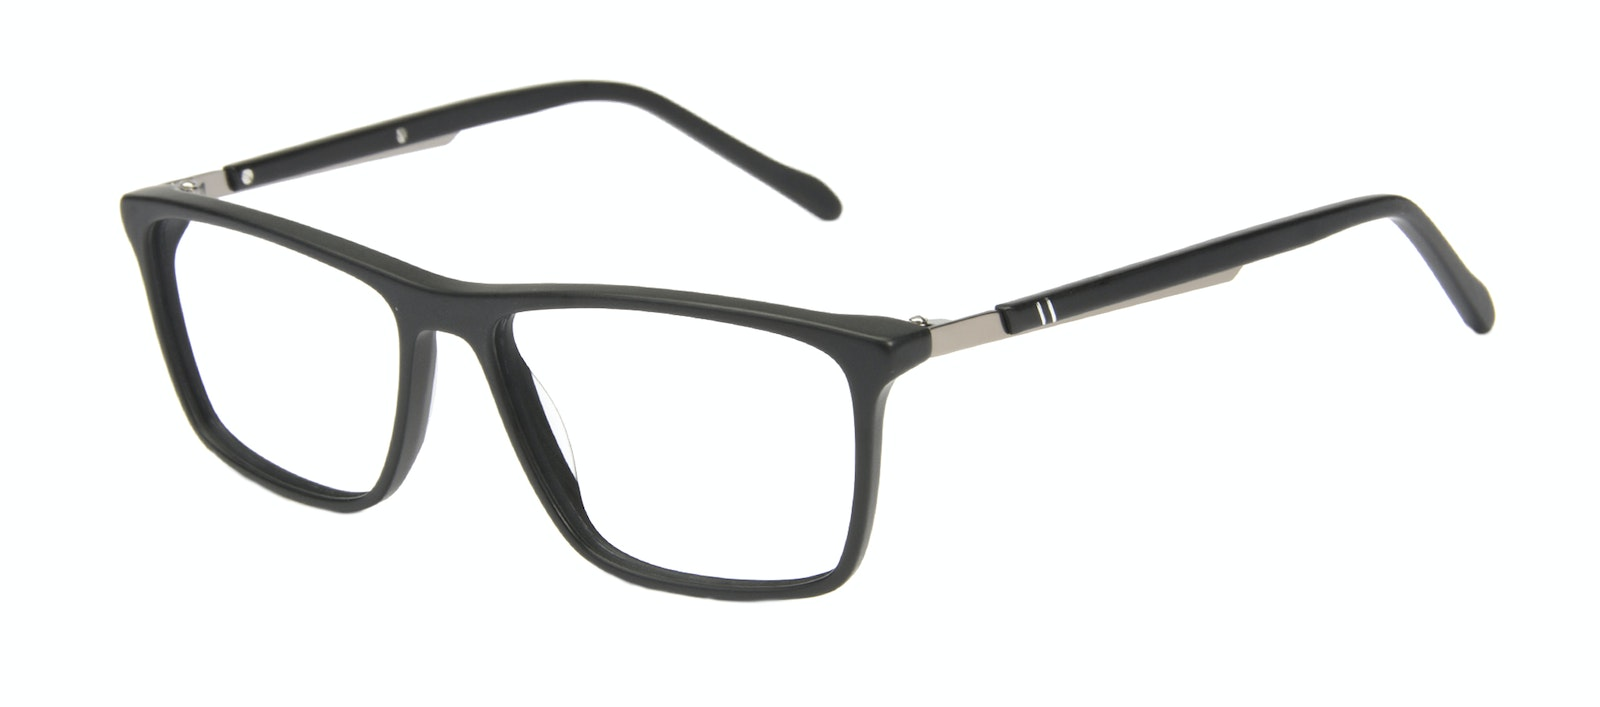 Affordable Fashion Glasses Rectangle Eyeglasses Men Skill Matte Black Tilt